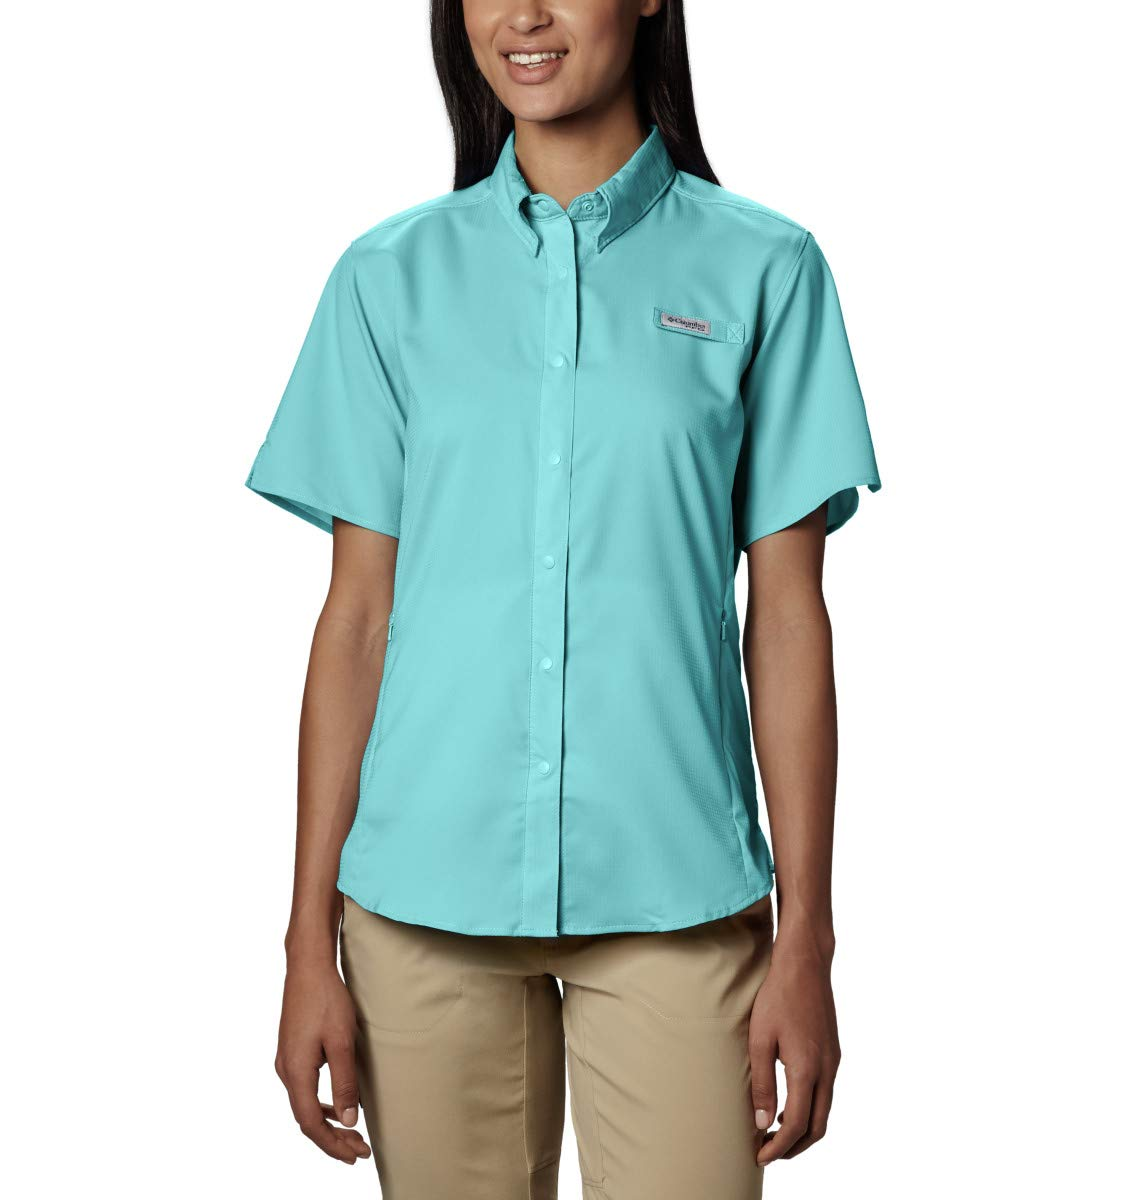 Columbia Women's Tamiami II Short Sleeve Shirt, Clear Blue, X-Large by Columbia